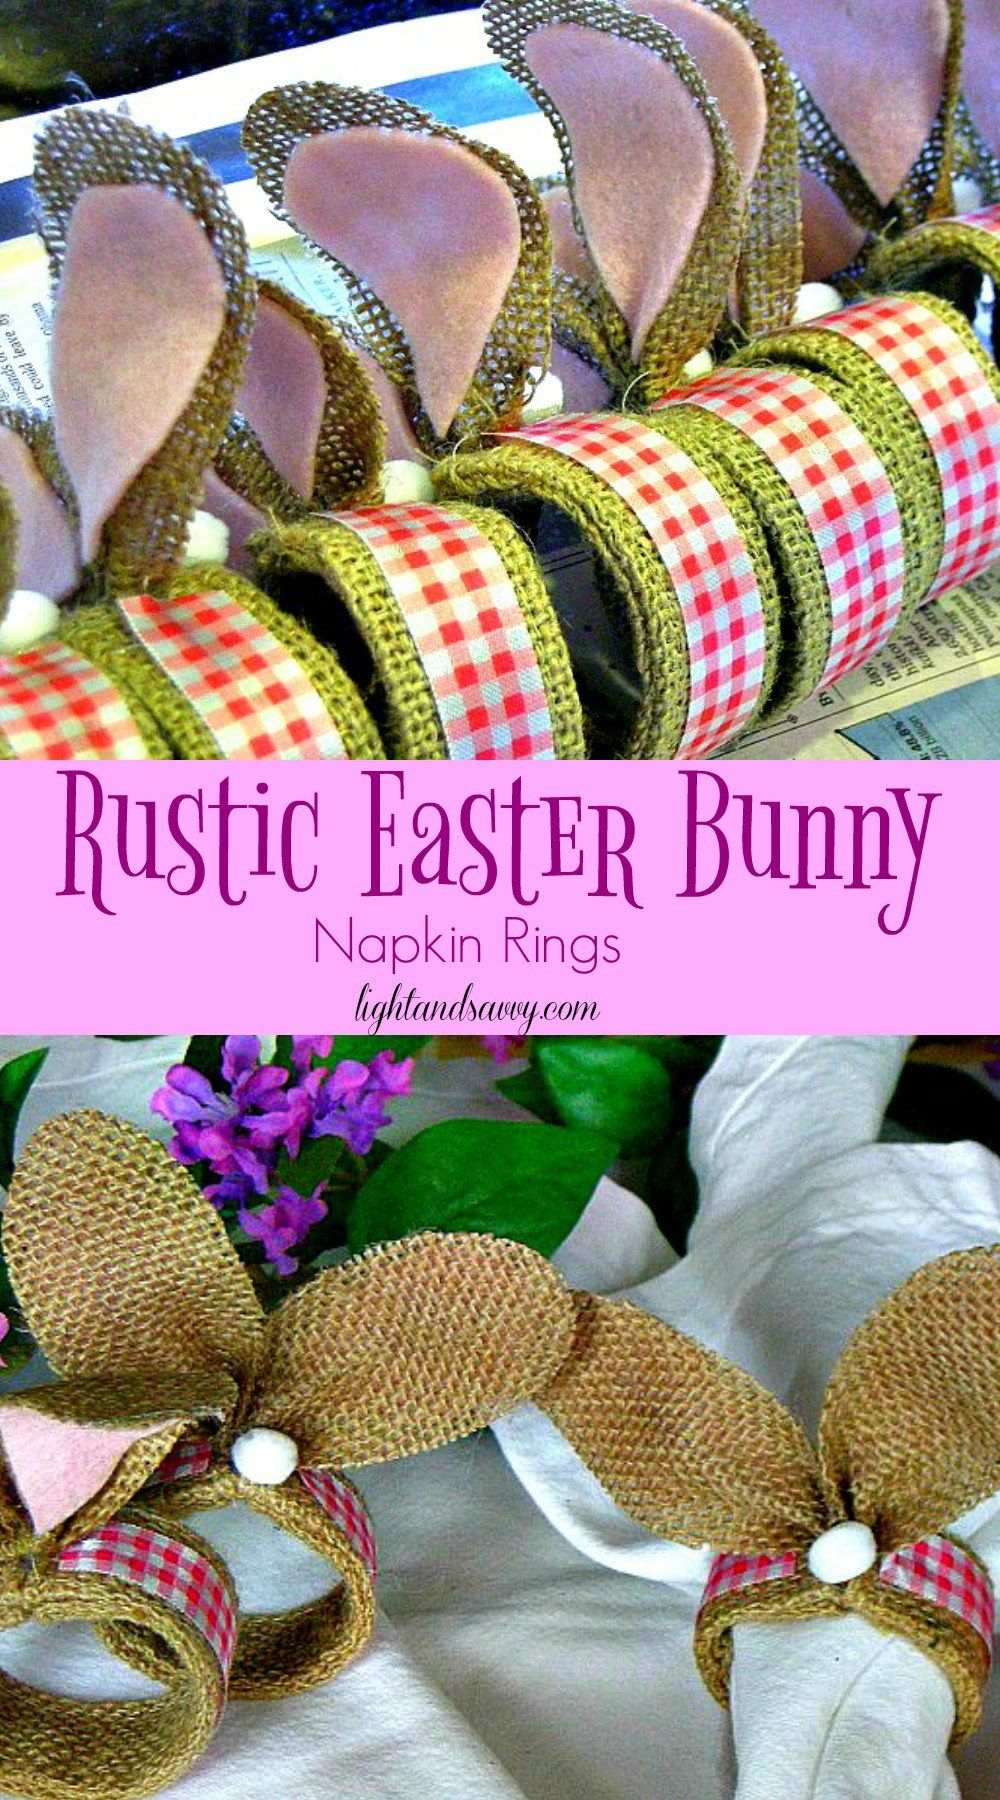 Rustic Easter Bunny Napkin Rings - Get Hopping! Make this simple craft for your own Easter table or buffet!